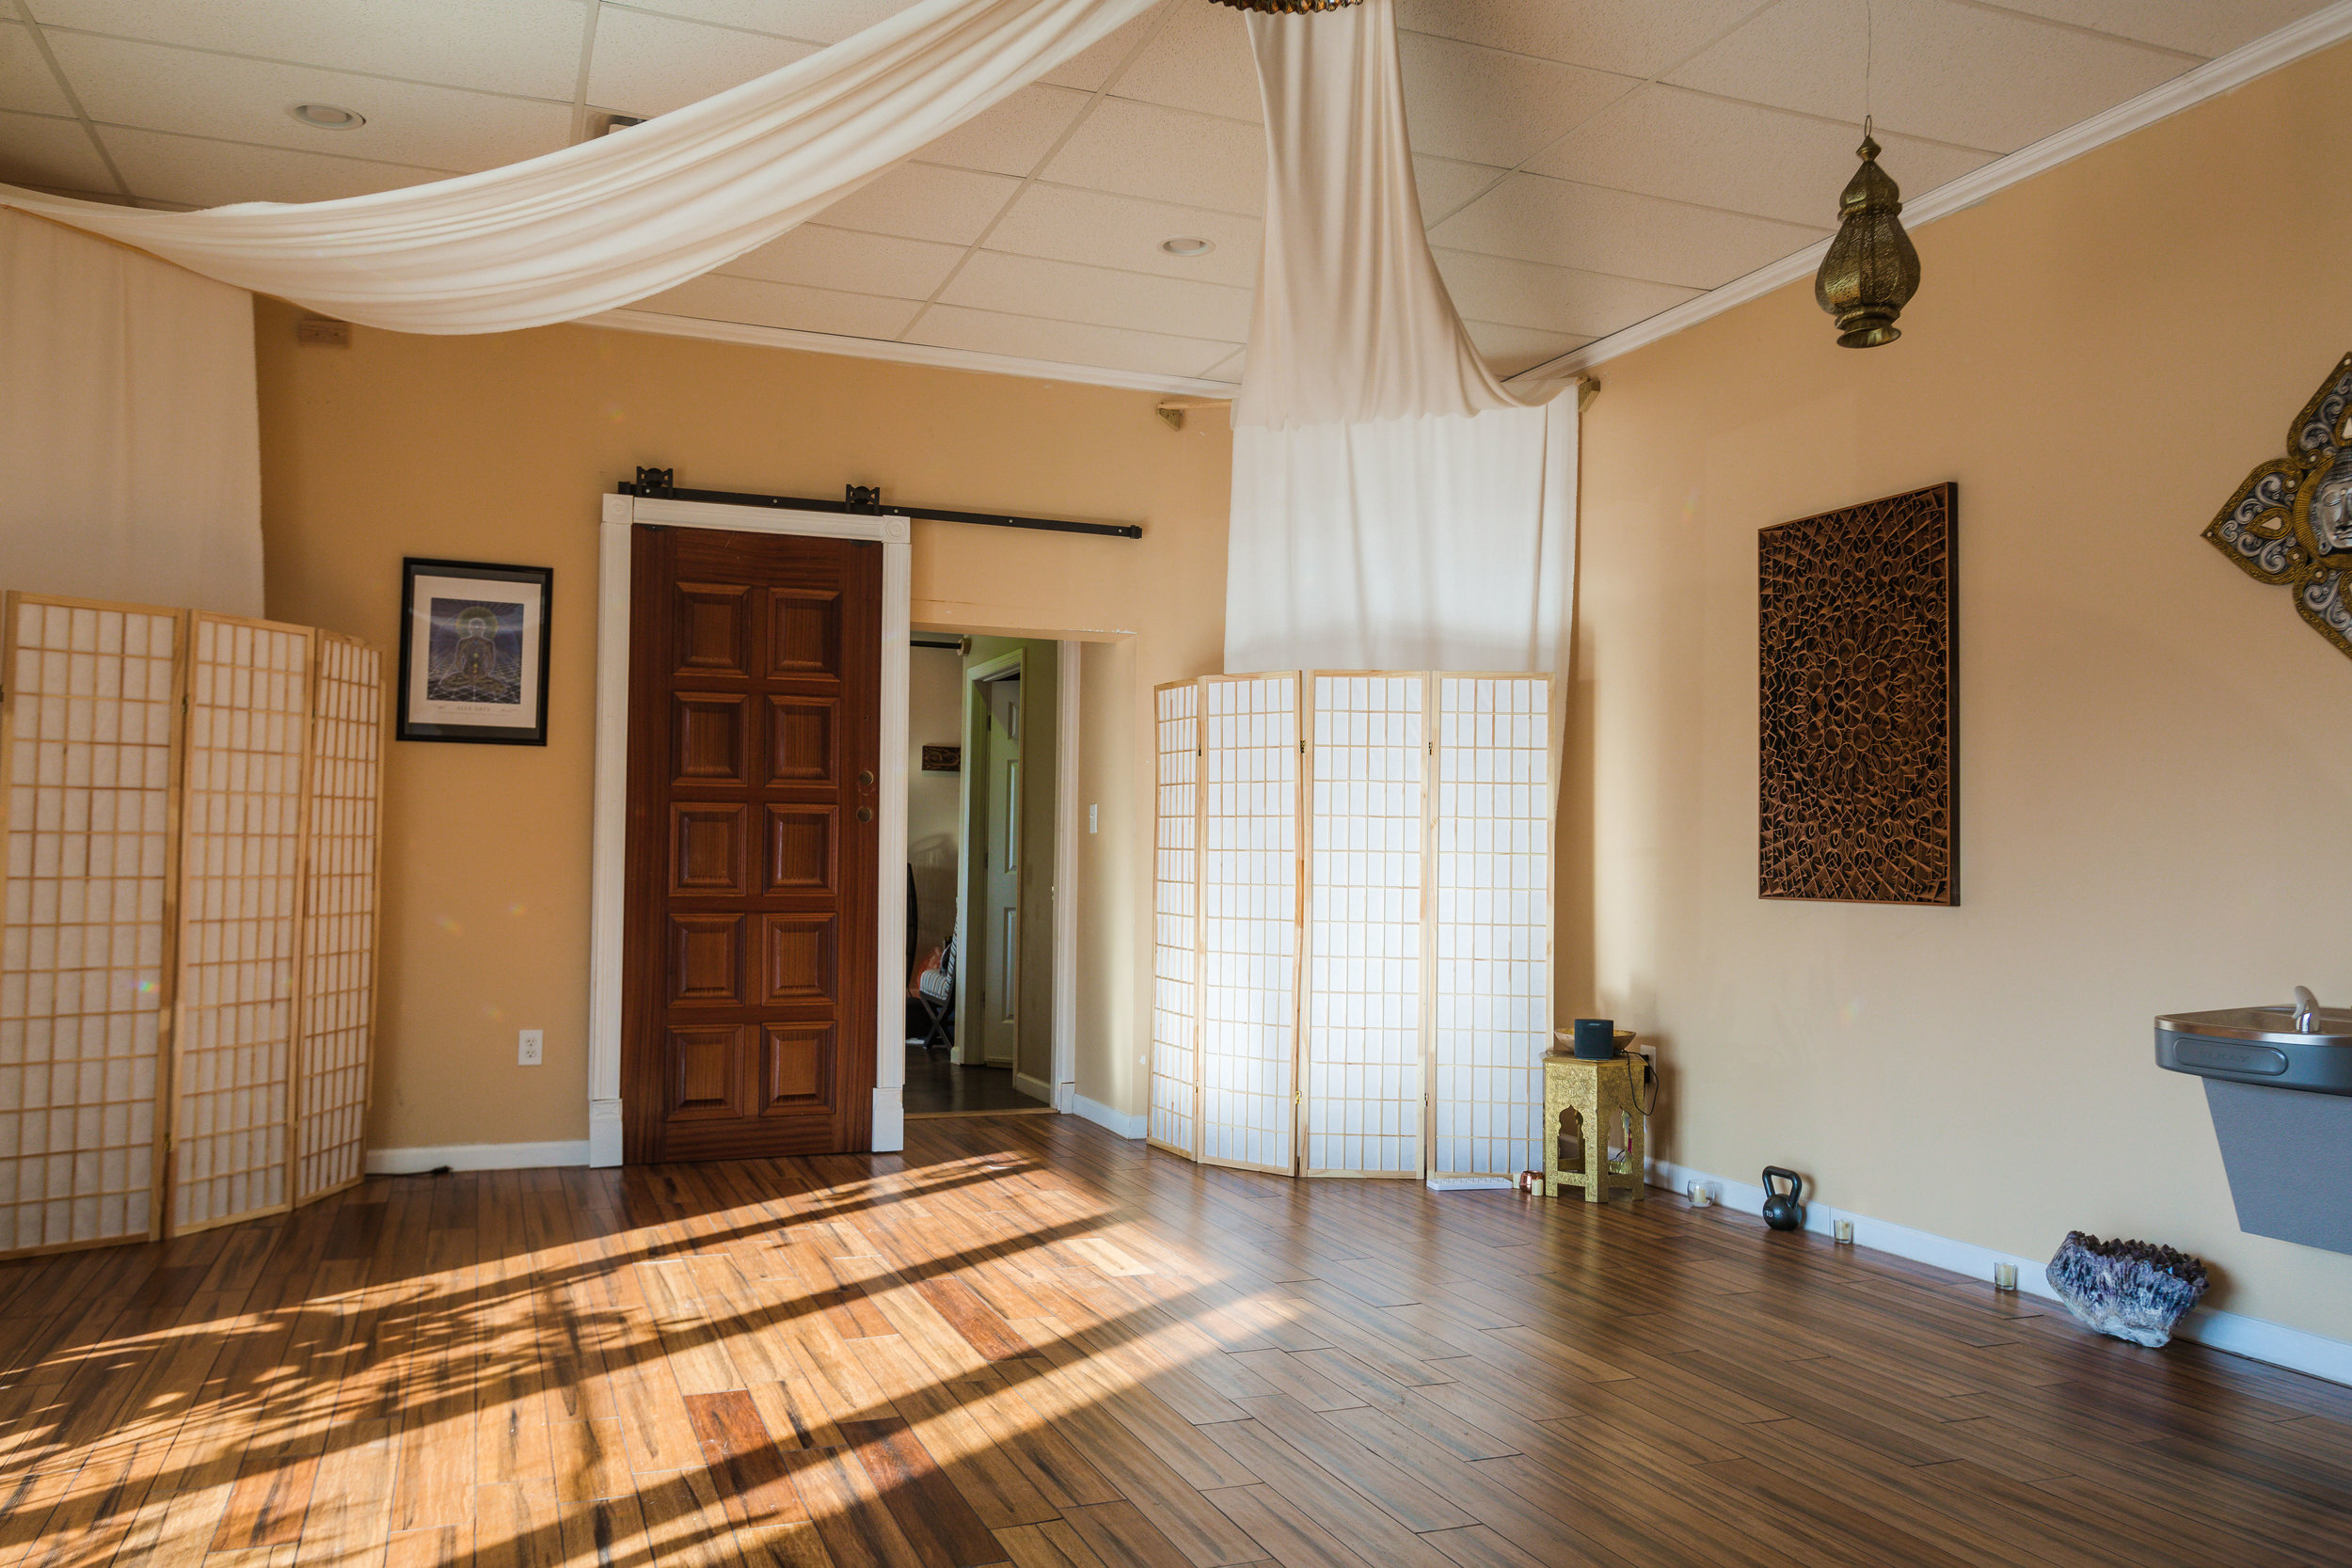 A Better View of the Sunlight in the Great Room, for Yoga, Meditation, Workshops, and More